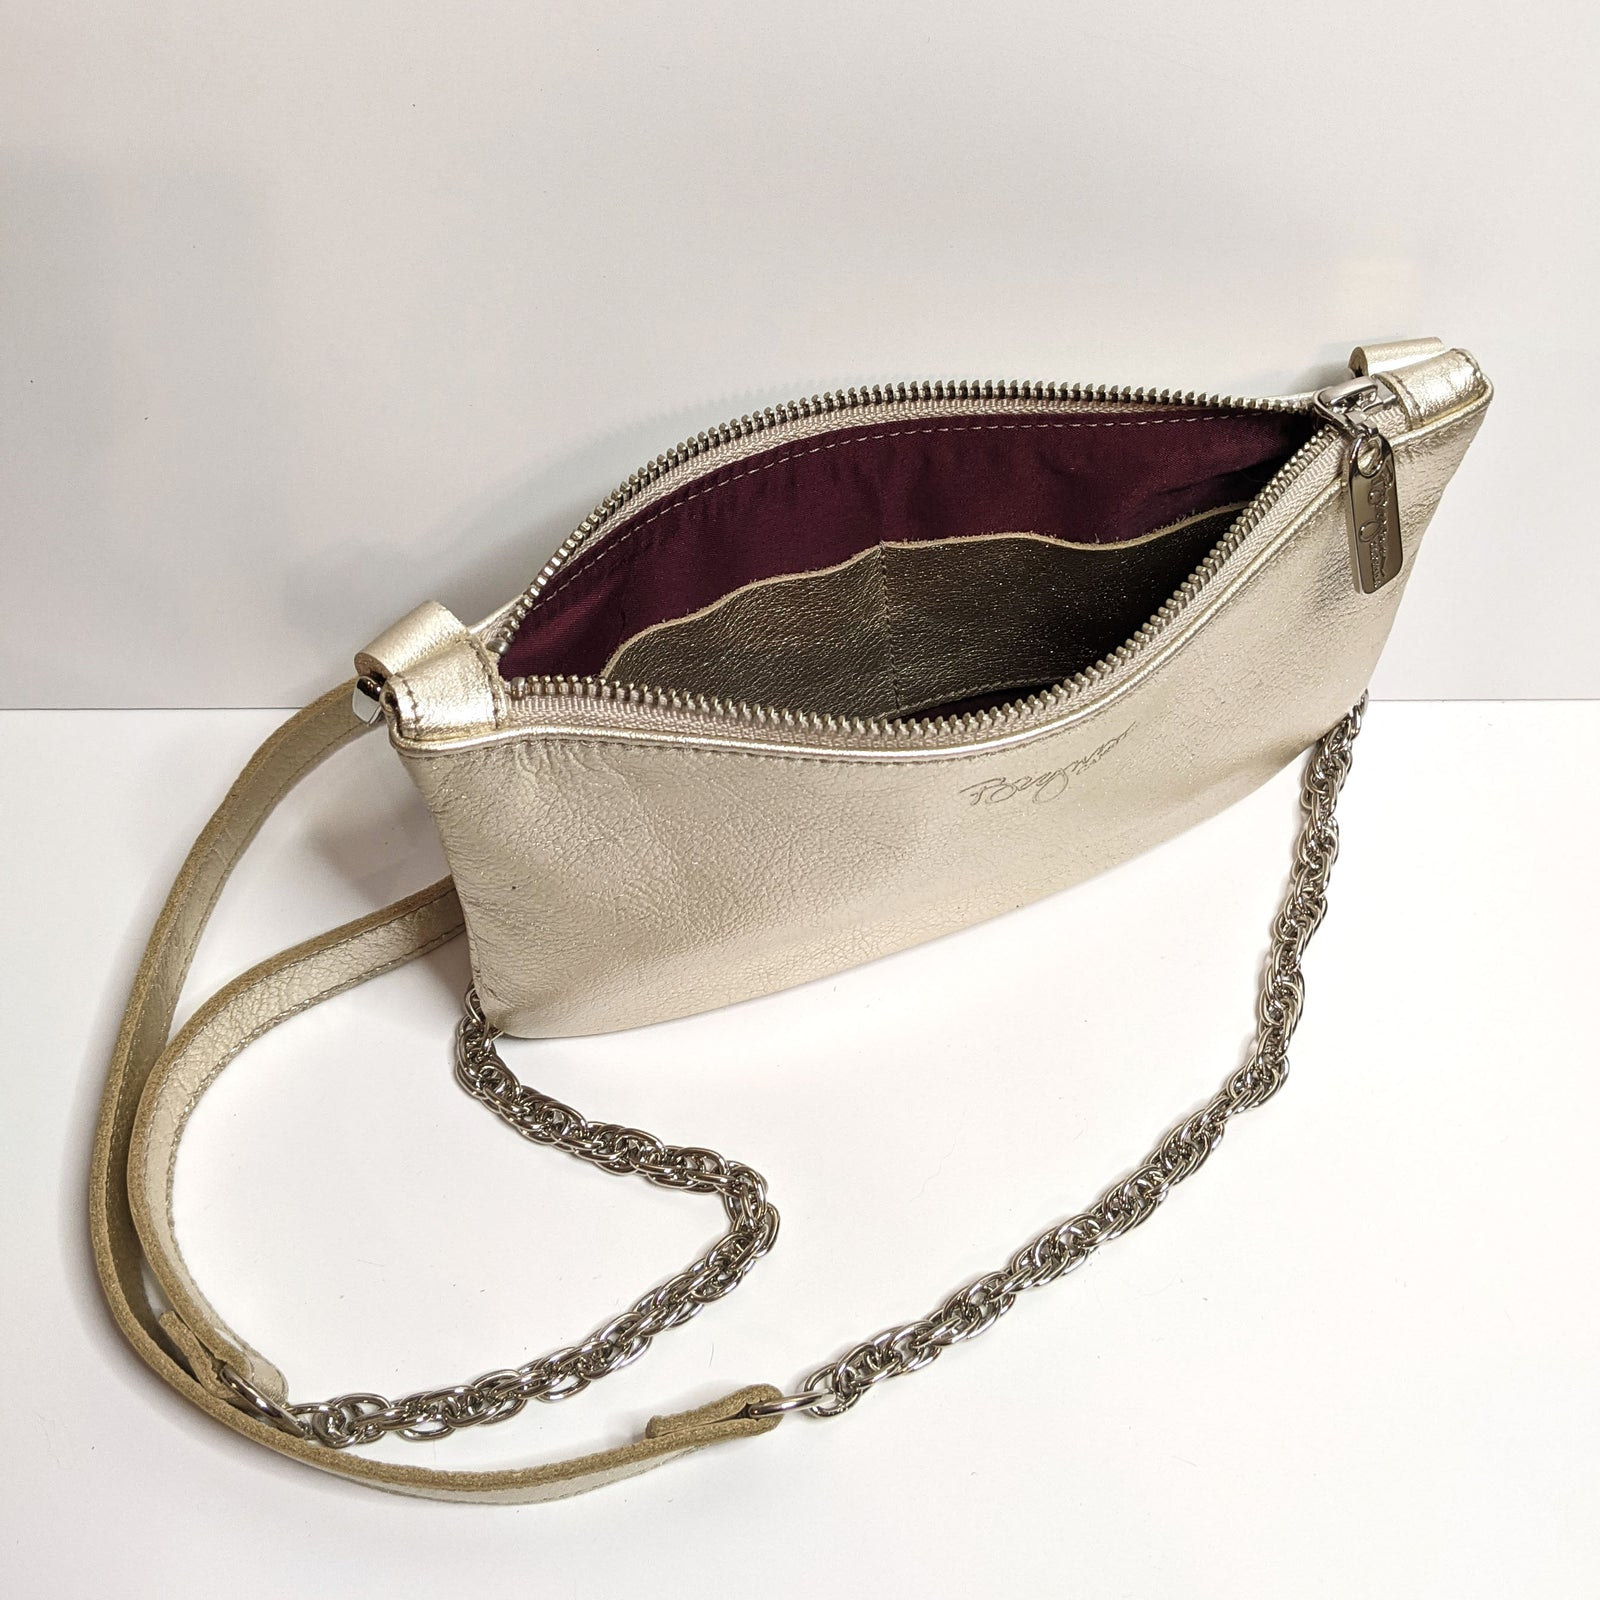 Mini Champagne Metallic Leather Crossbody, Made in the USA by Brynn Capella